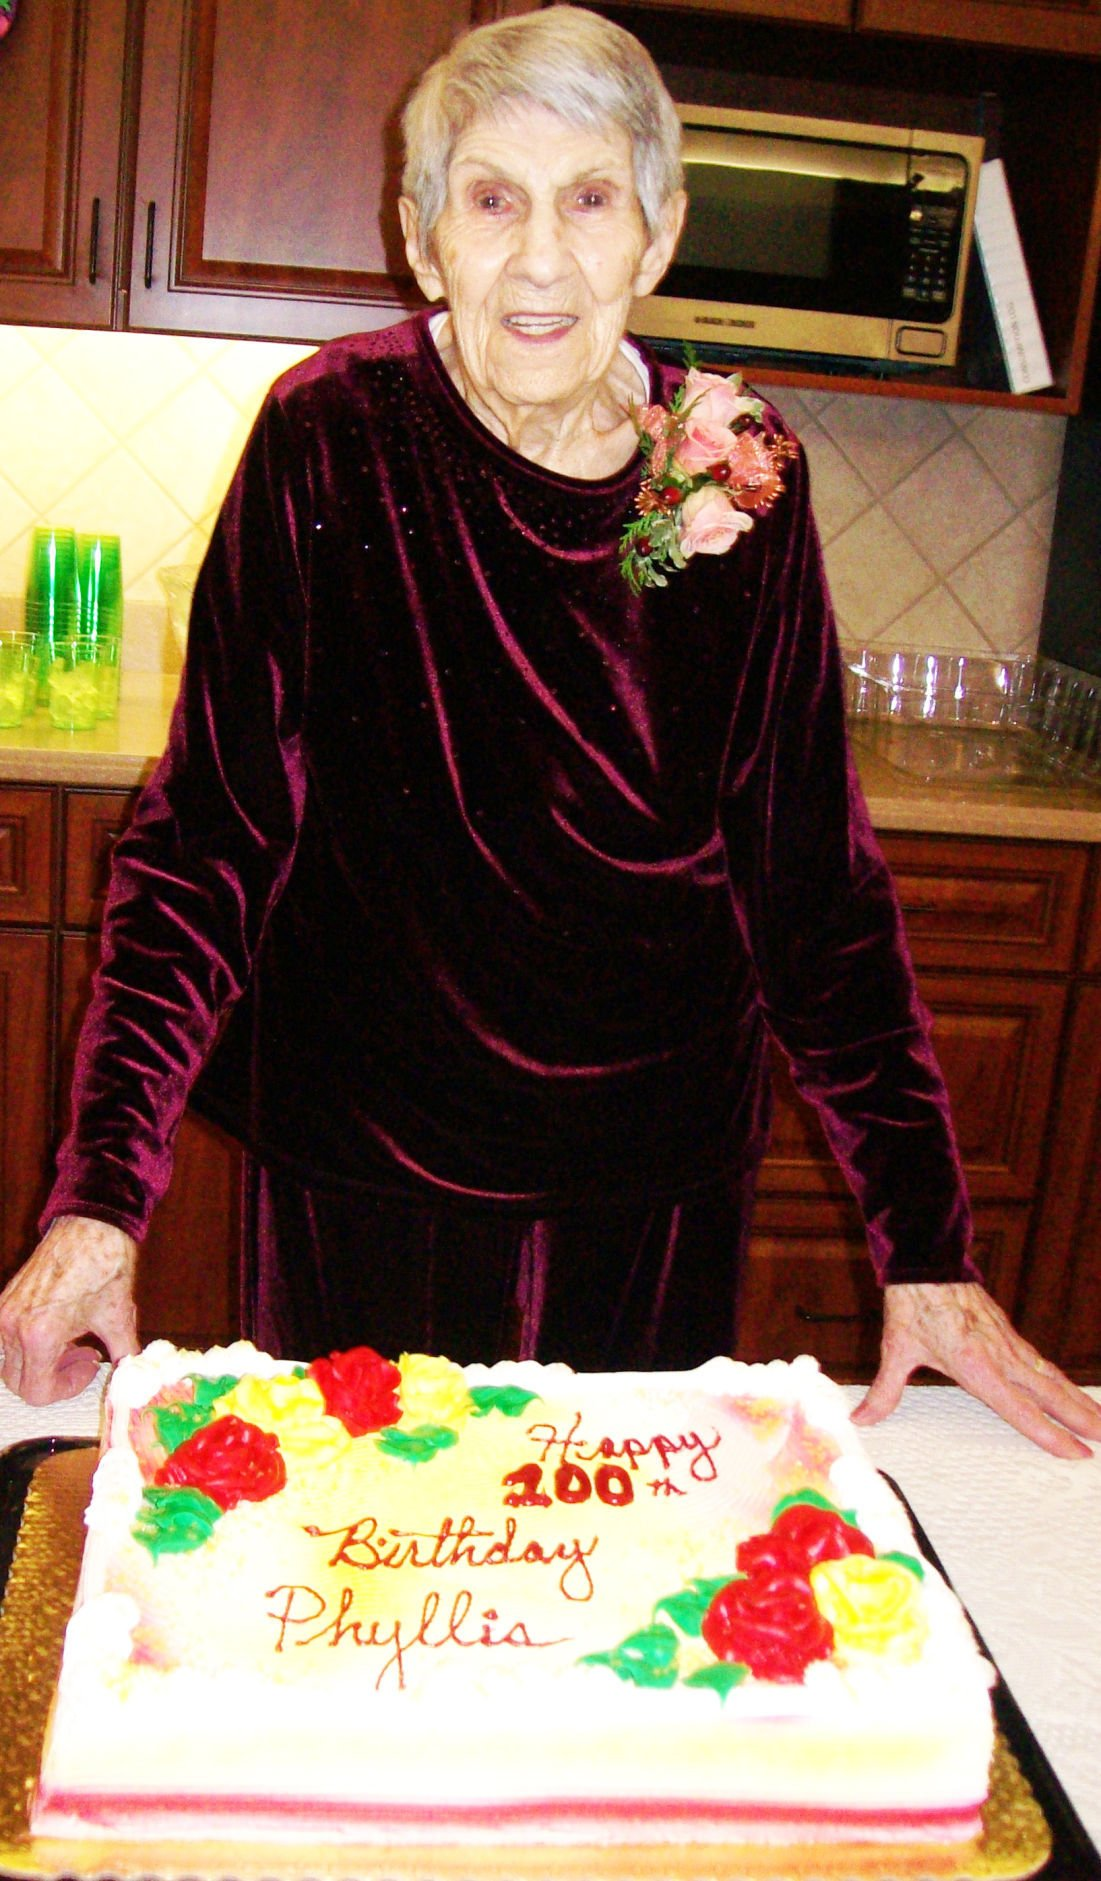 Phyllis with cake